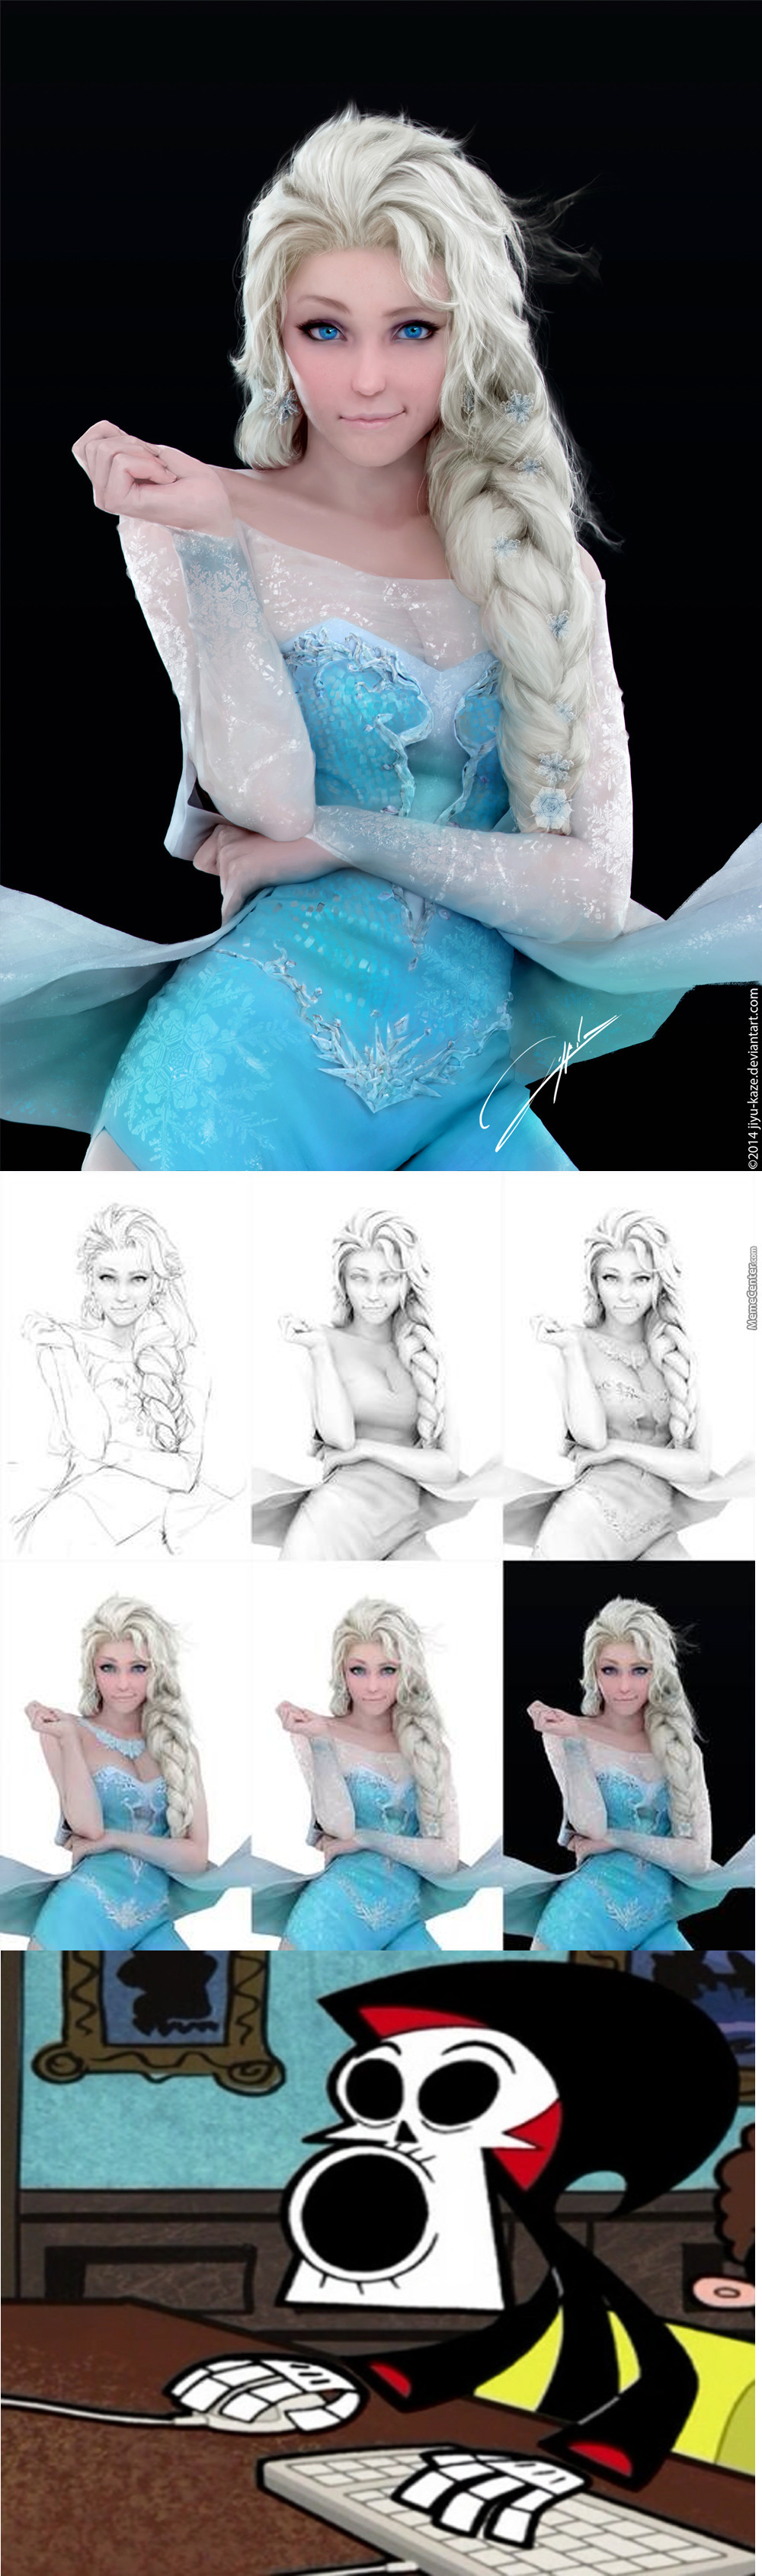 I Thought It Was A Cosplayer But This Simply Amazing.. I'll Take 20